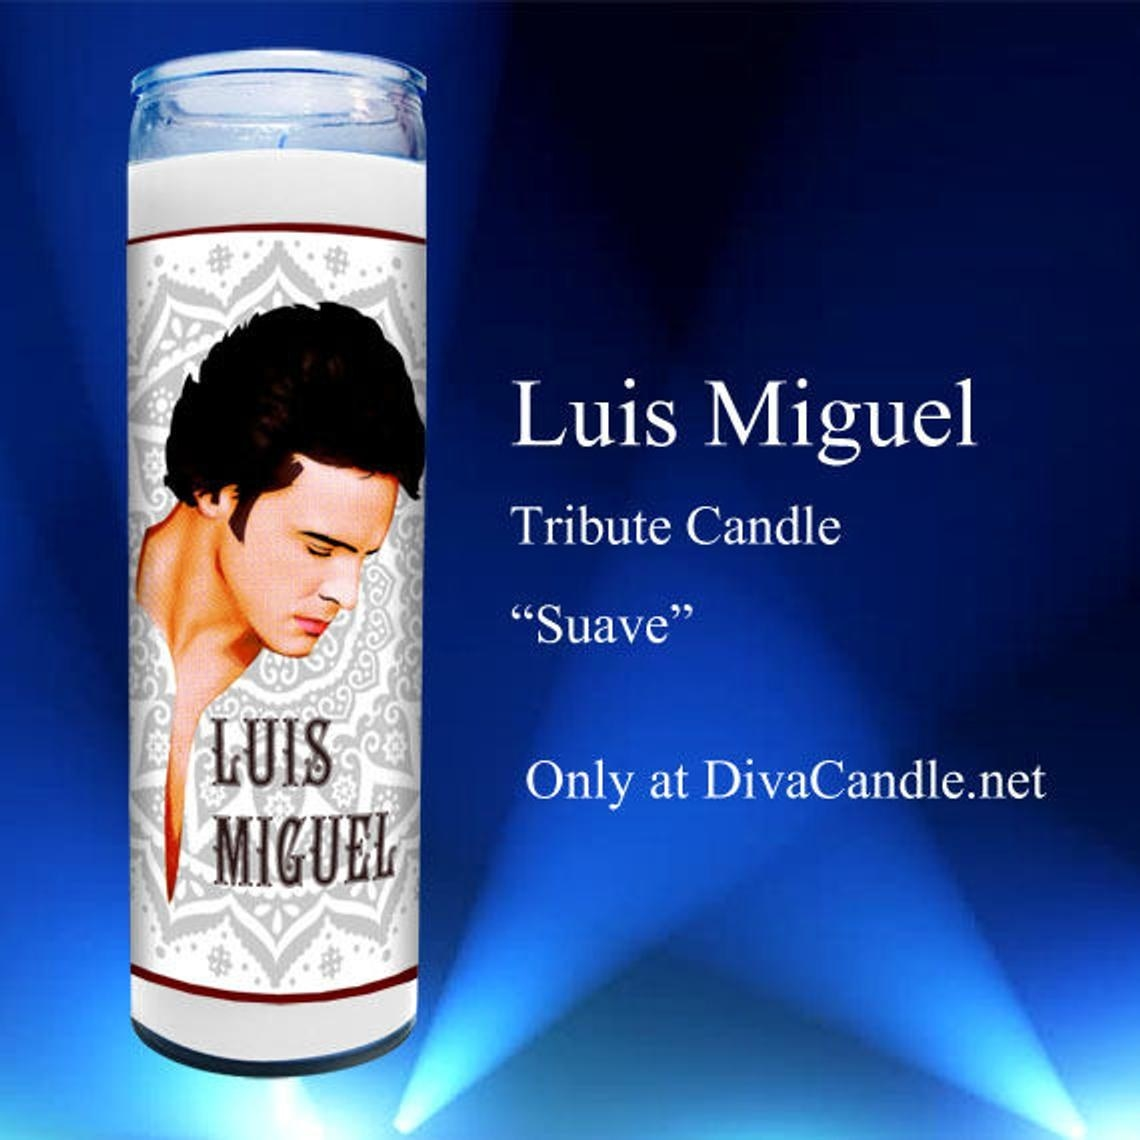 The tall candle with an image of Luis Miguel